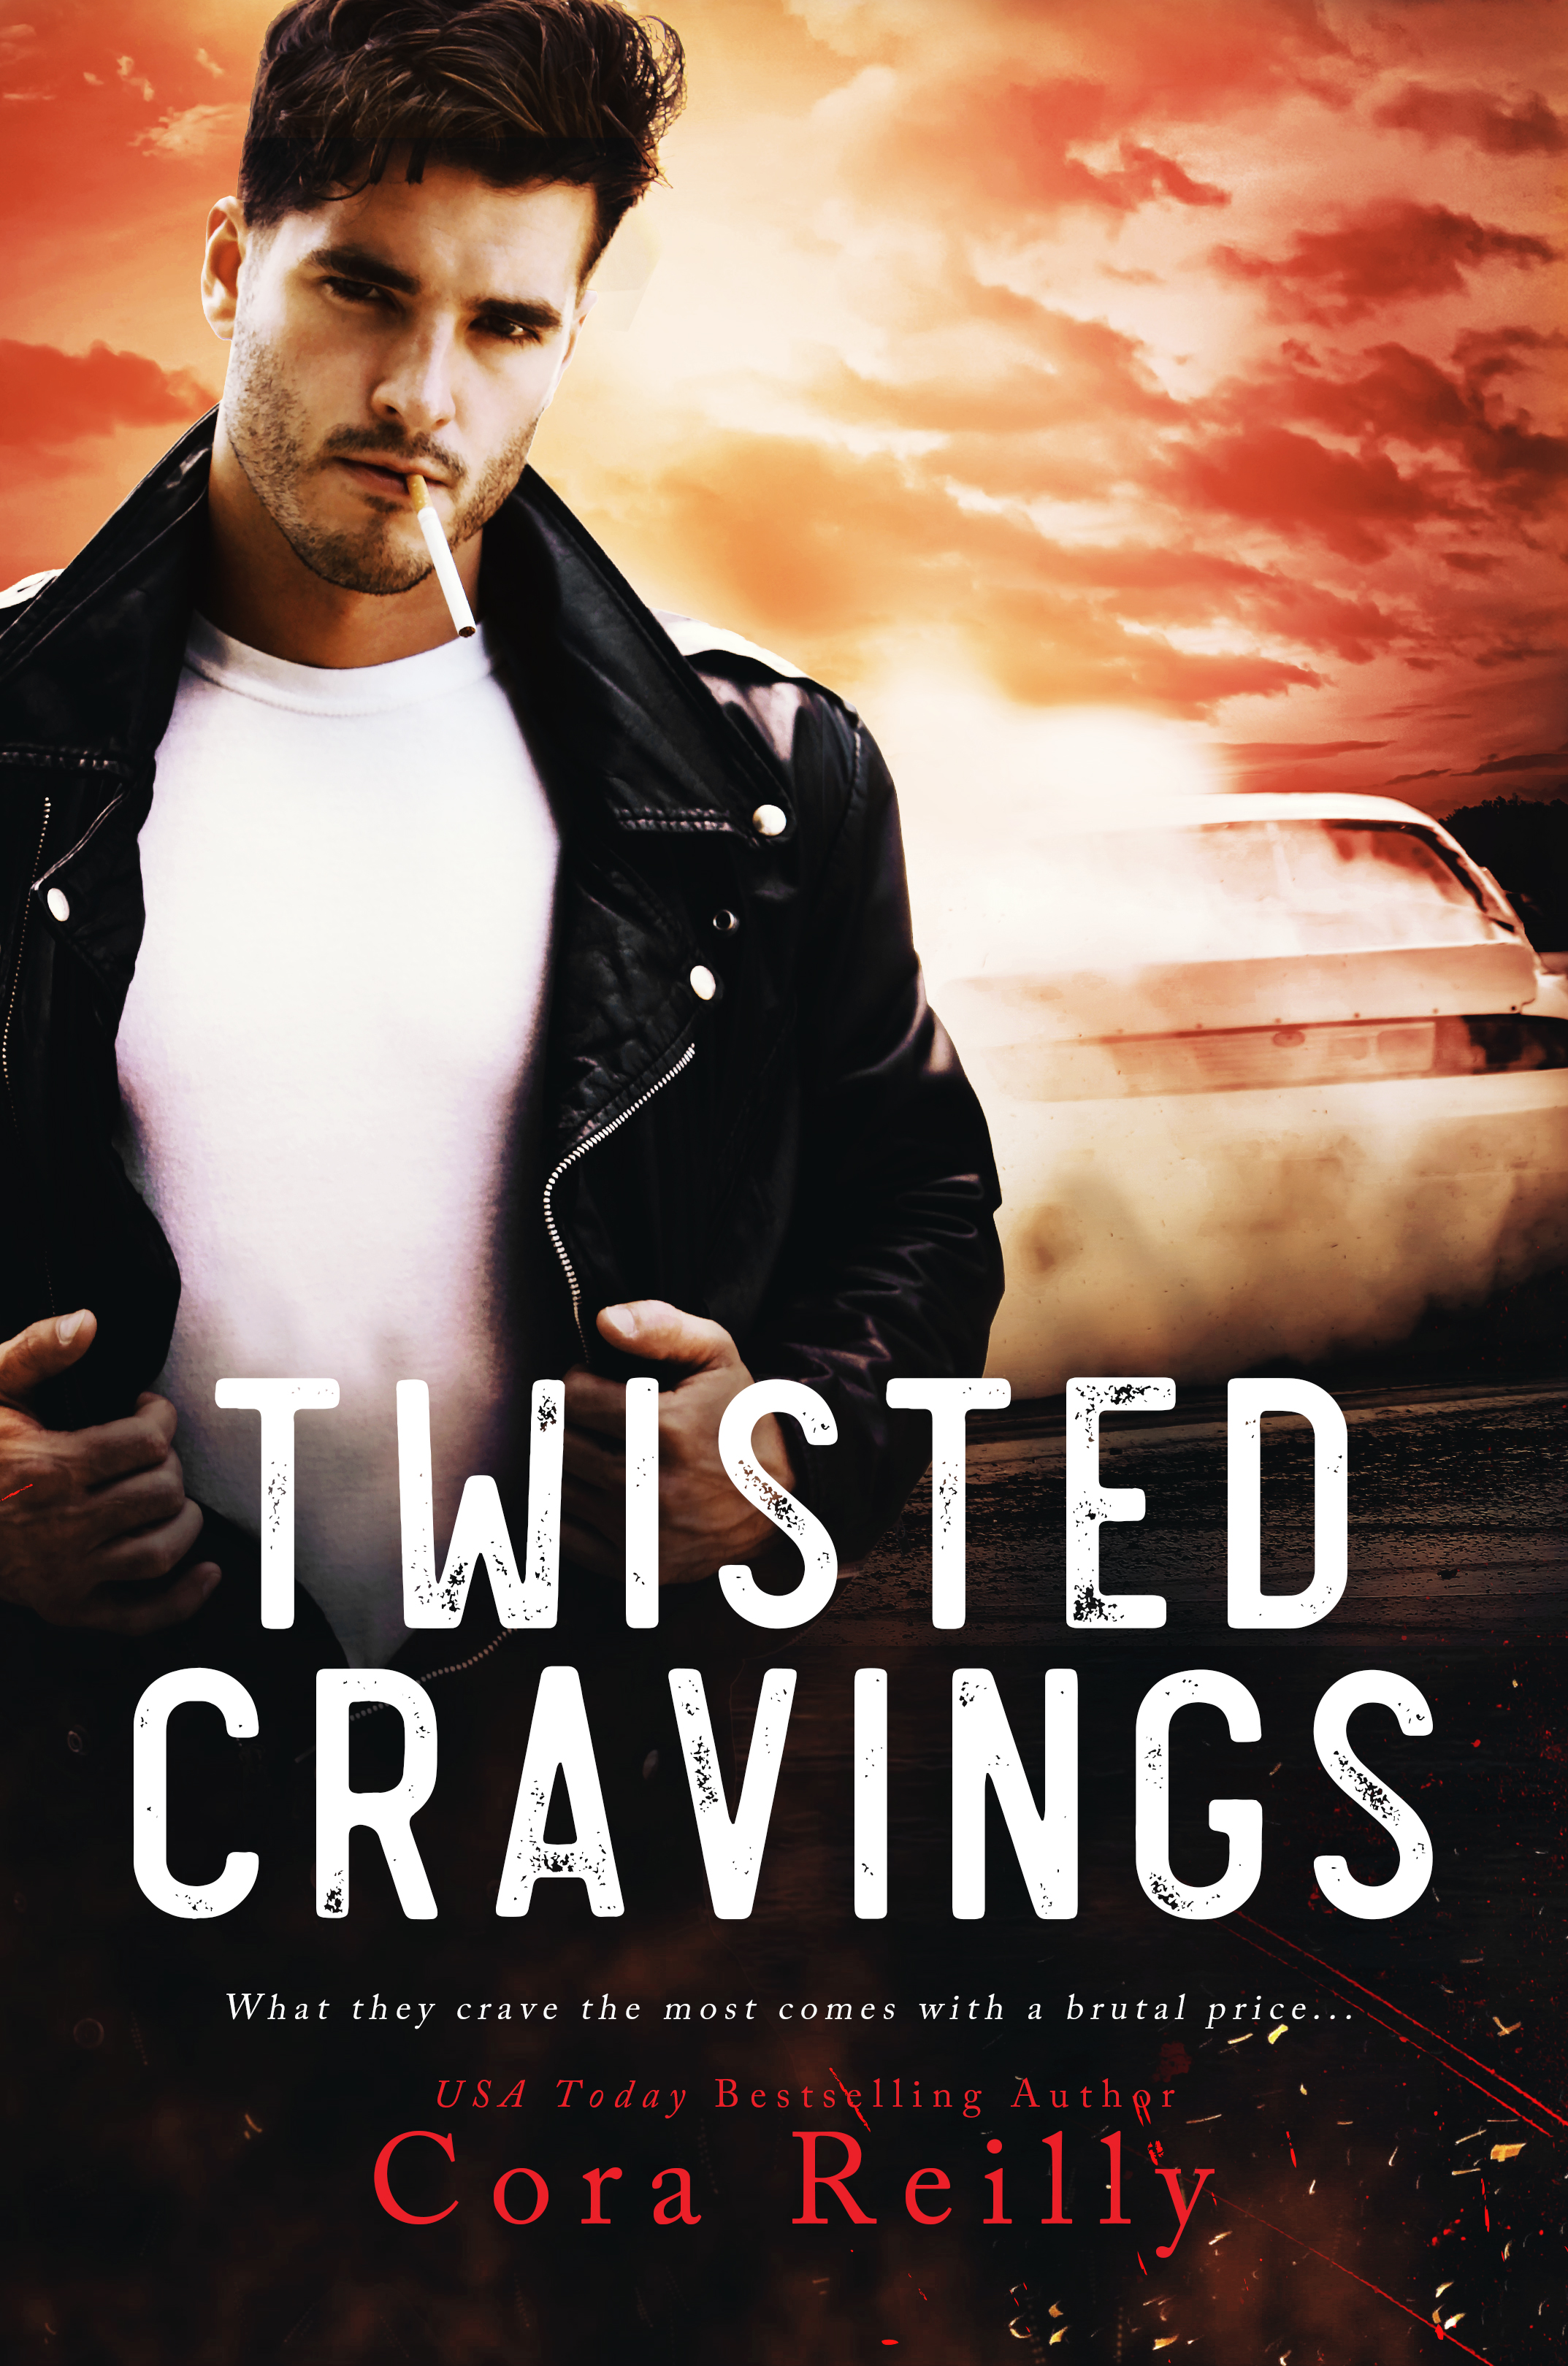 Twisted Cravings Cora Reilly ebook